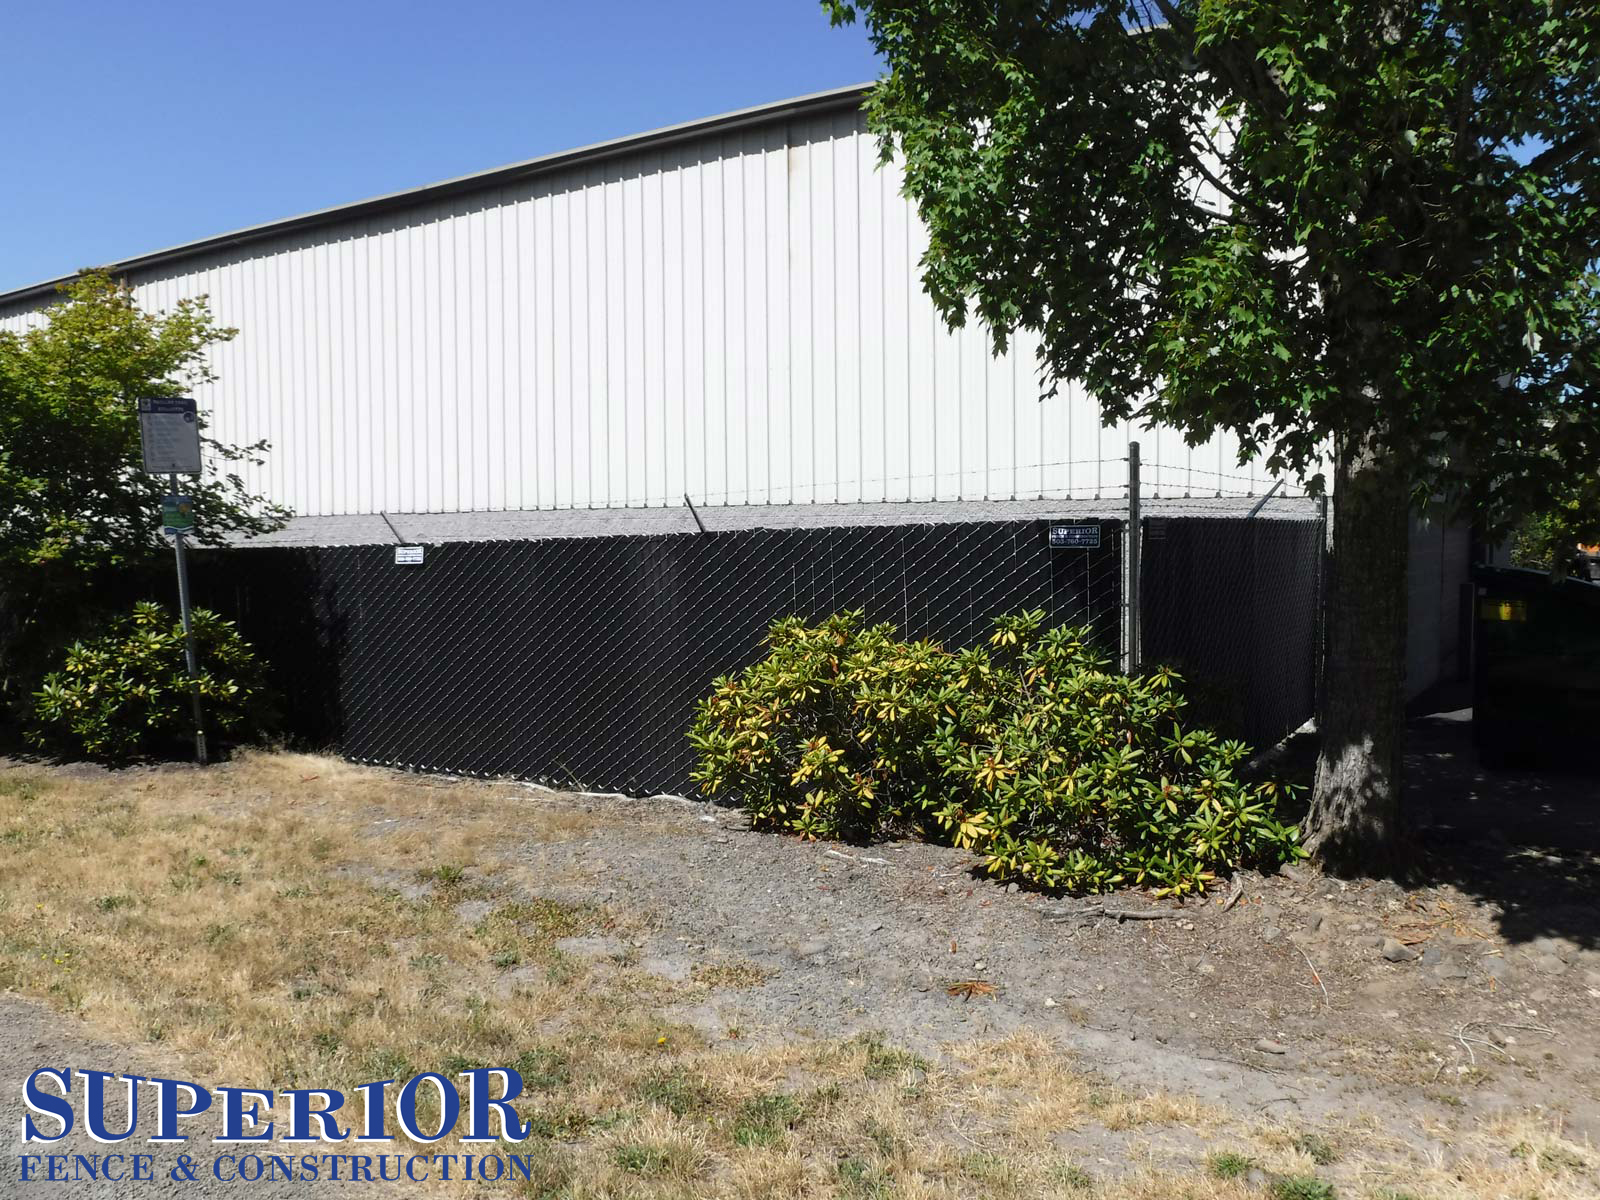 Superior Fence & Construction - commercial black chain link fence